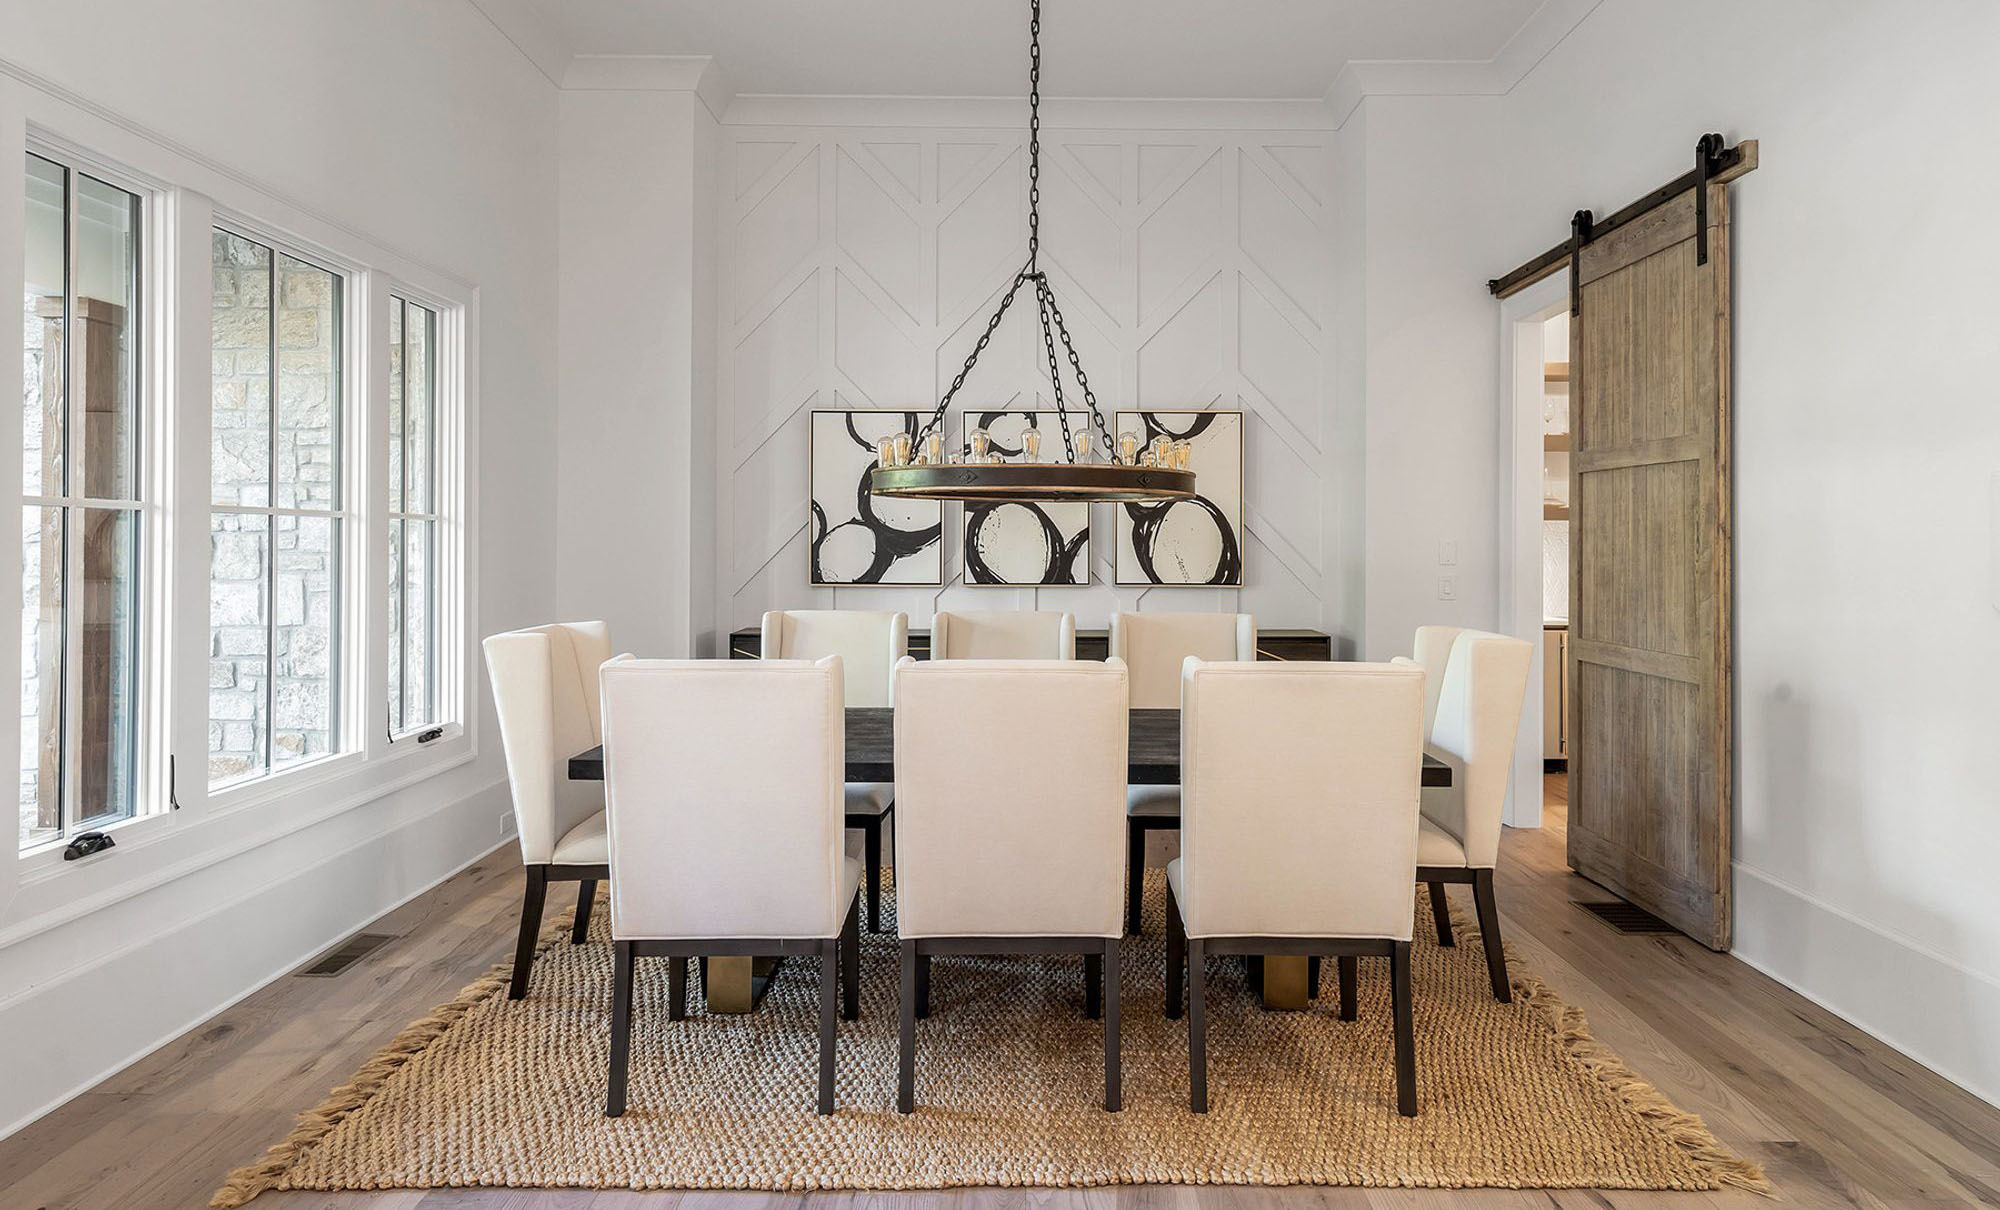 Dining room woven area rug made from natural fibers and no harsh dyes or chemicals. types of area rugs